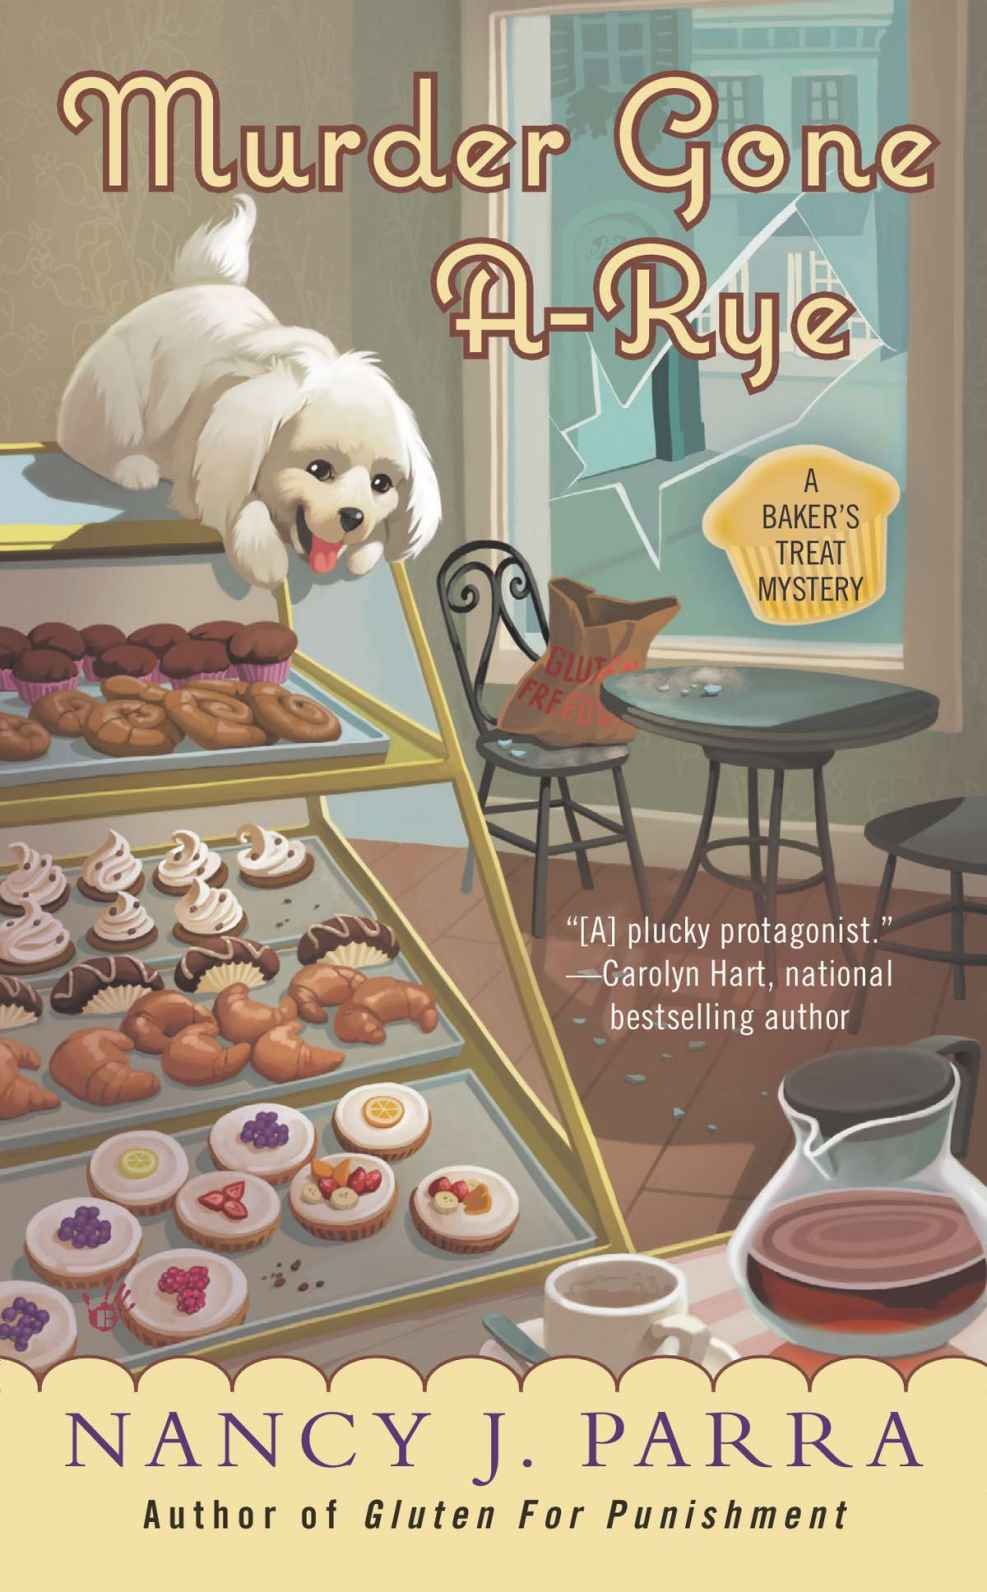 Murder Gone A-Rye (A Baker's Treat Mystery) by Nancy J. Parra